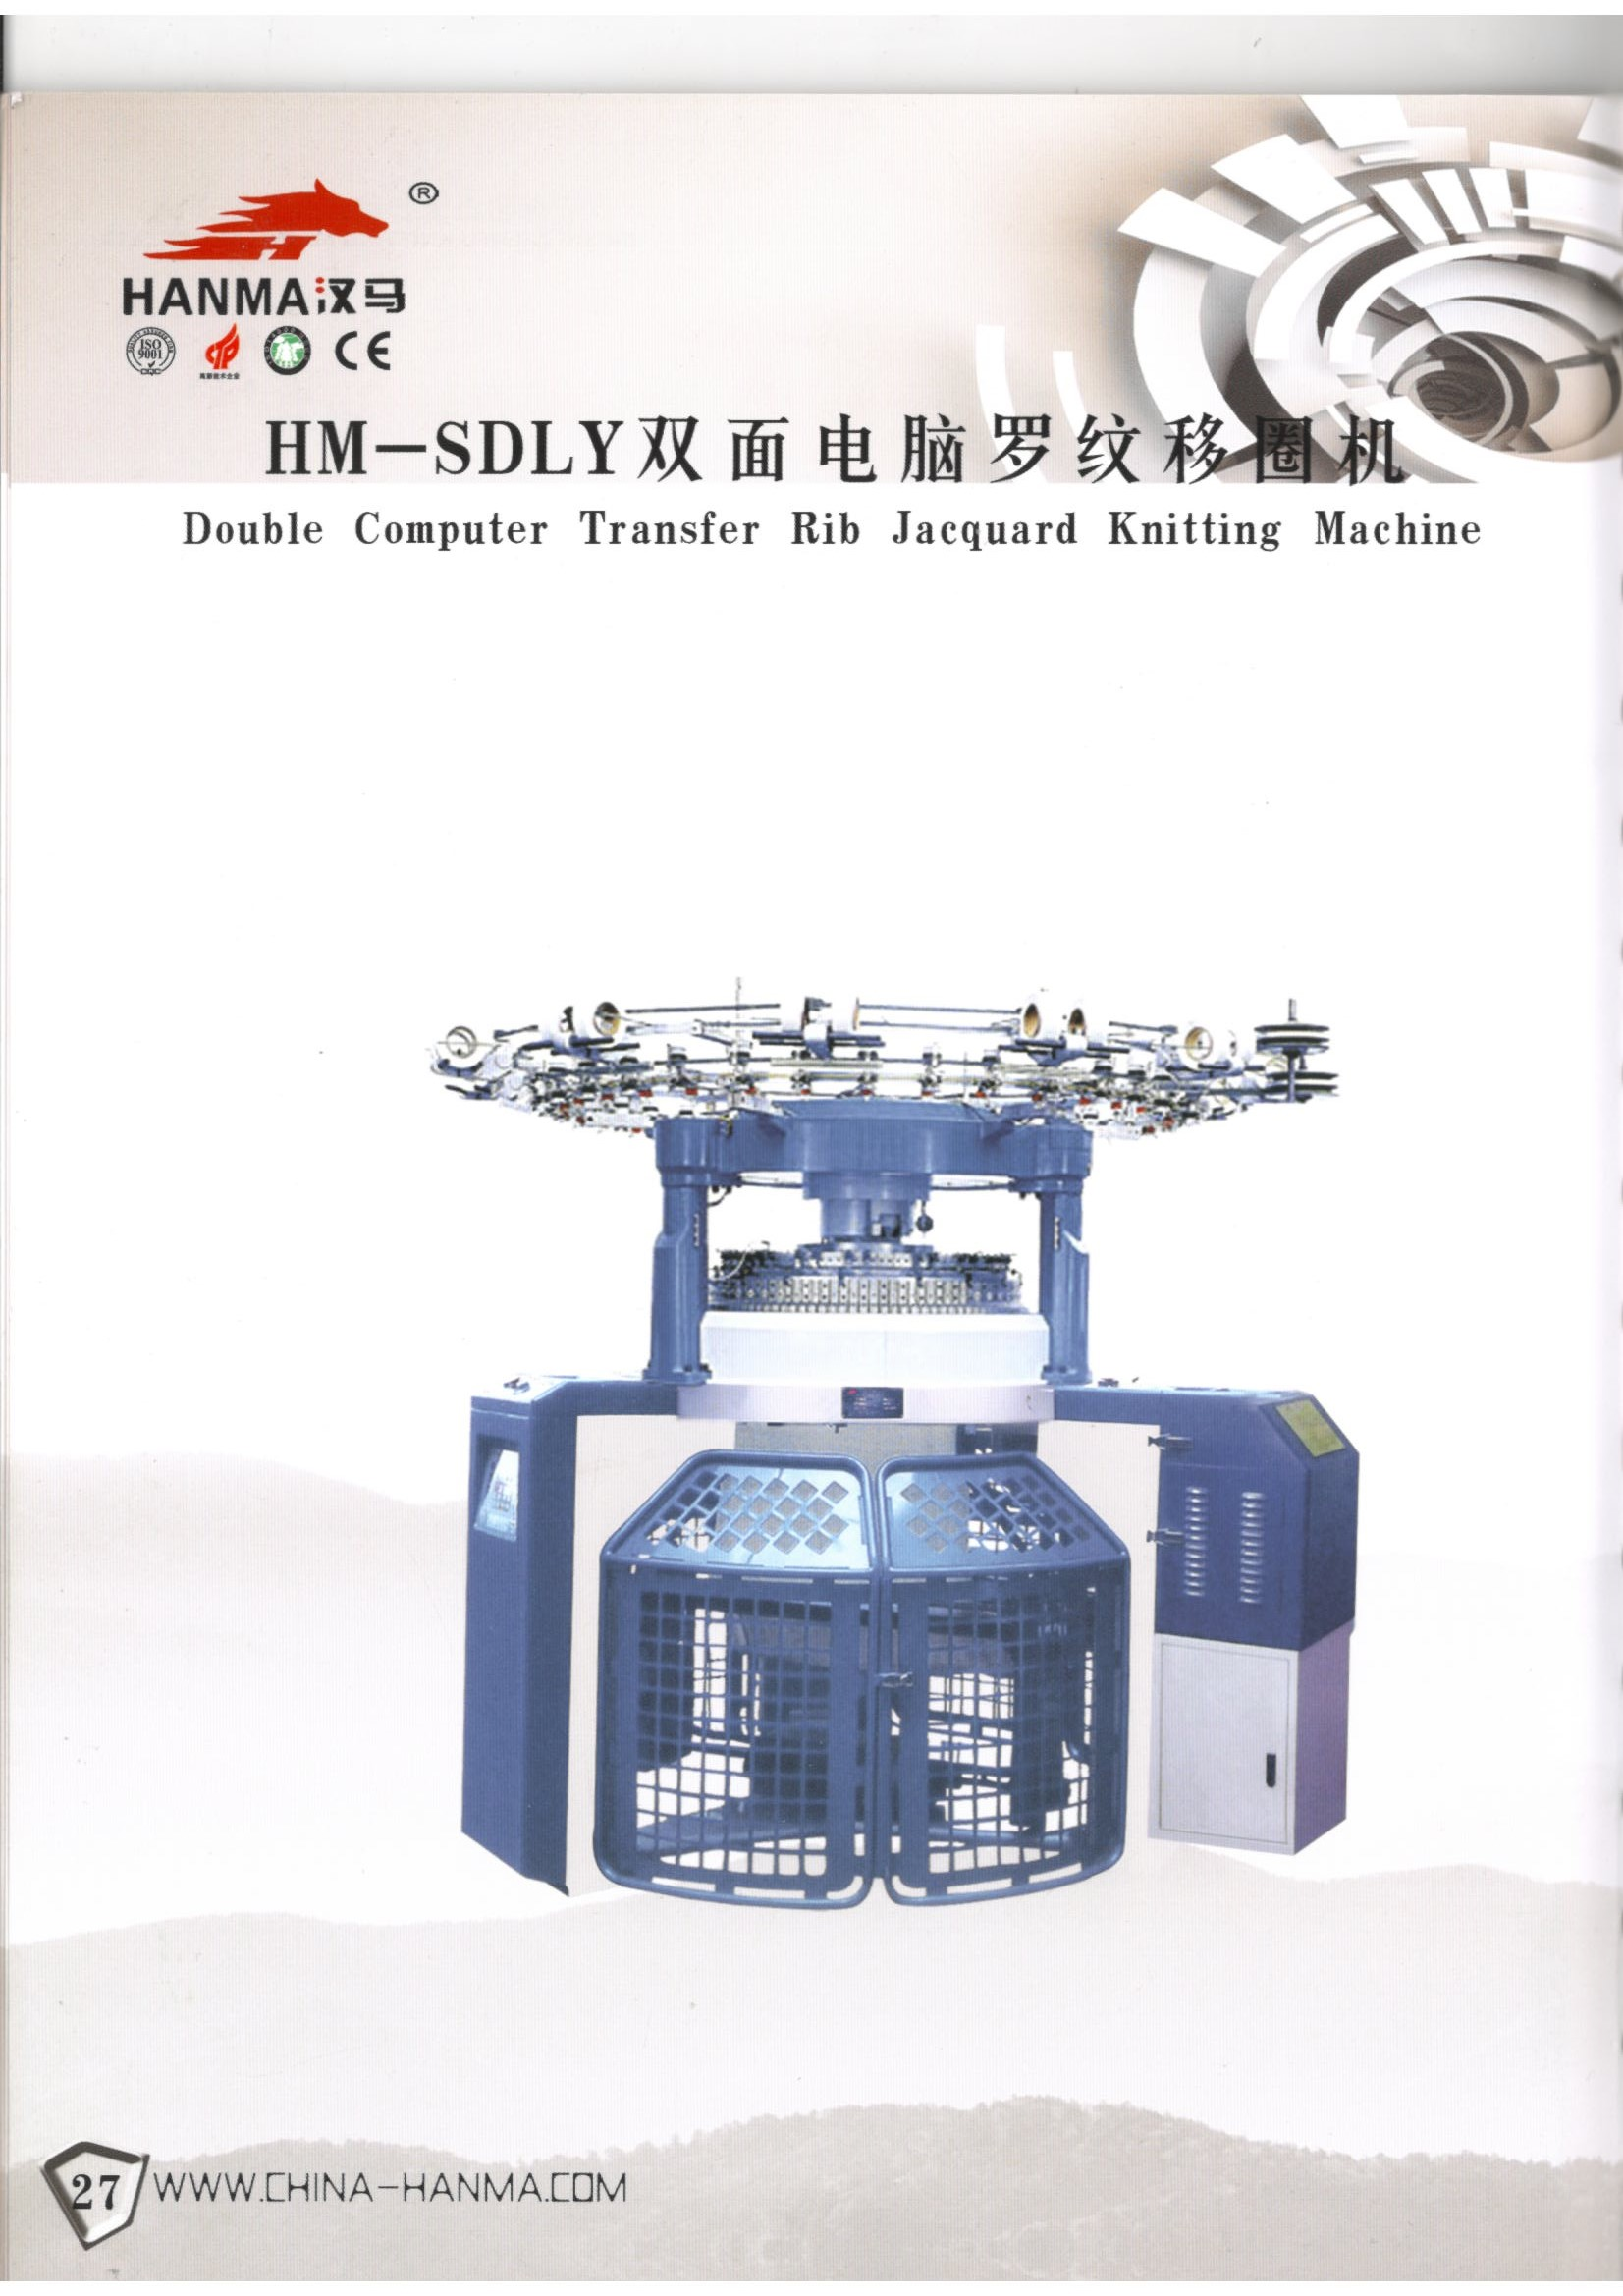 Double Computer Transfer Rib Jacquard Knitting Machine